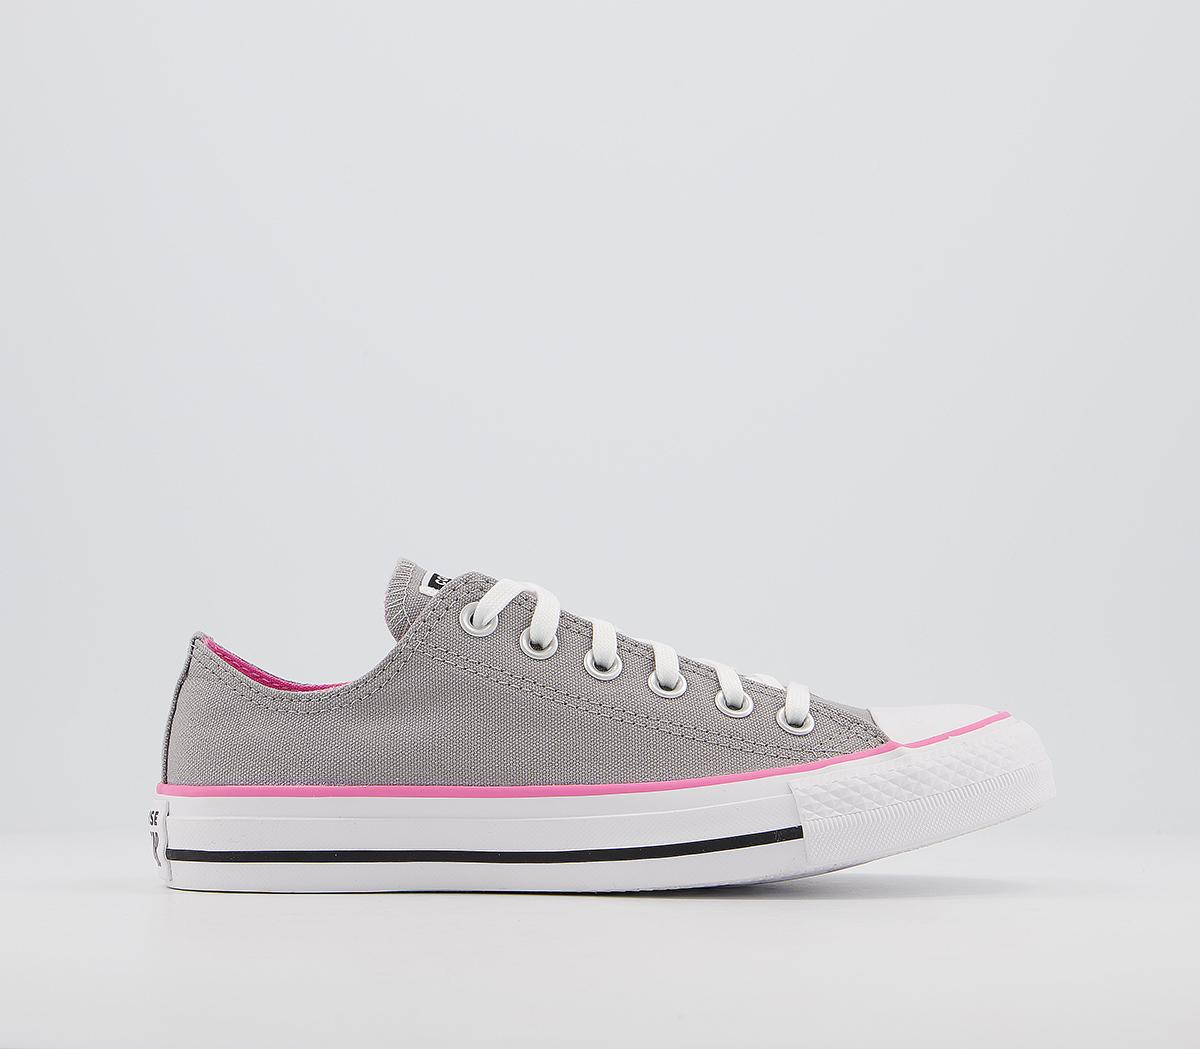 Star Low Trainers Grey Pink - Hers trainers